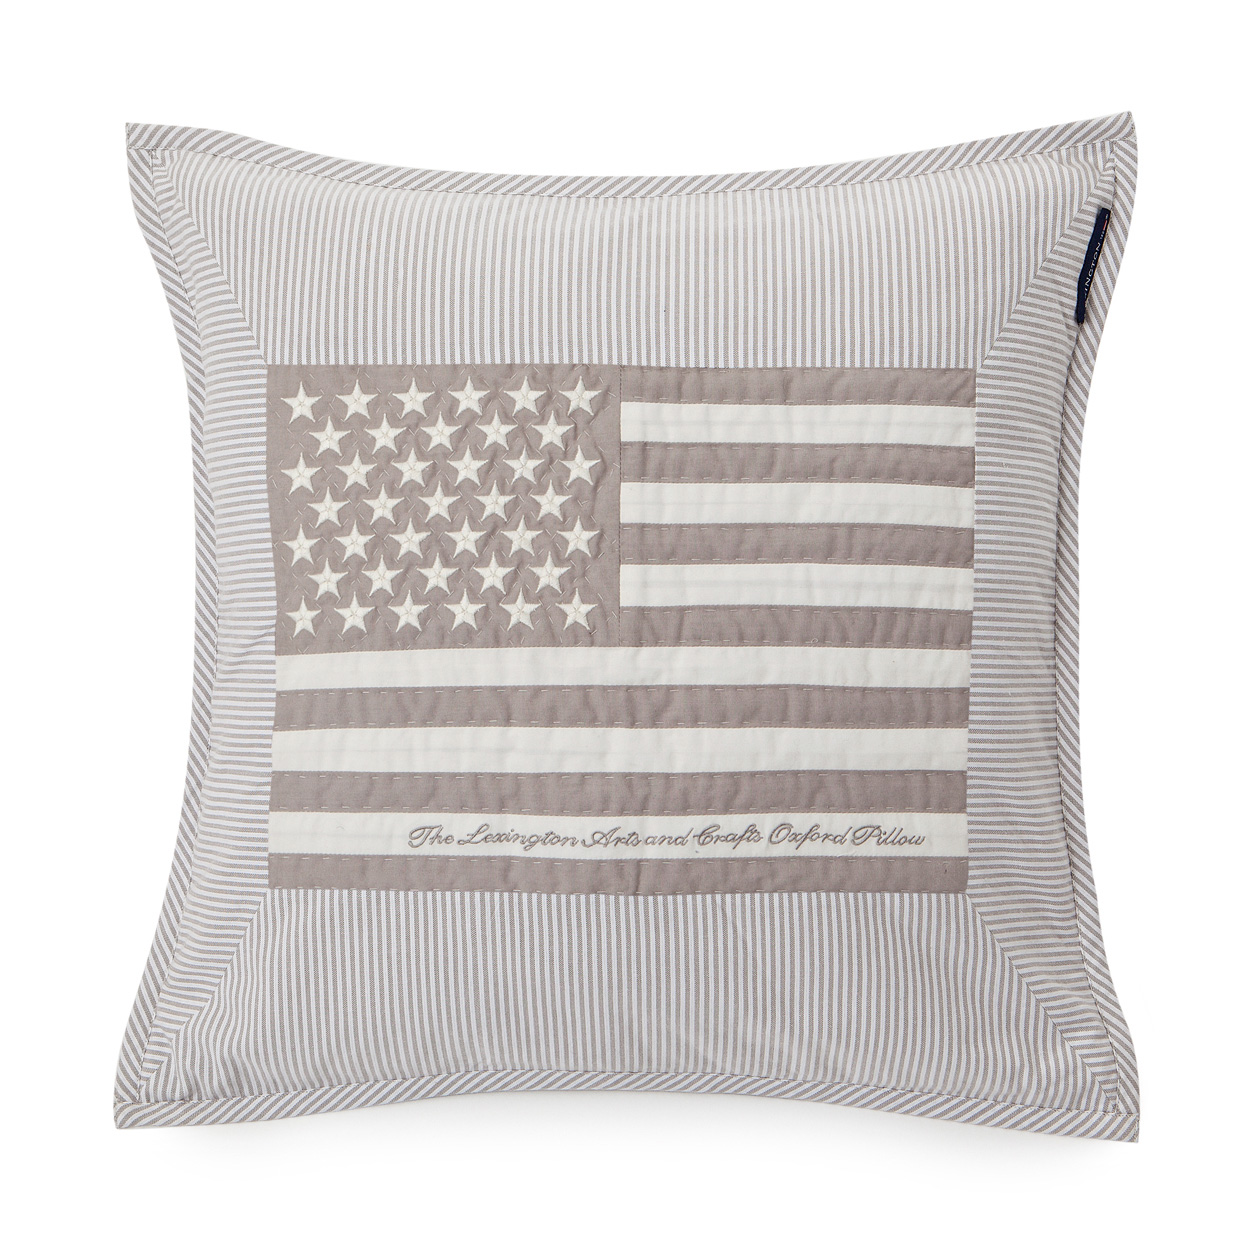 Flag Arts & Crafts Cushion Cover, Grey/white